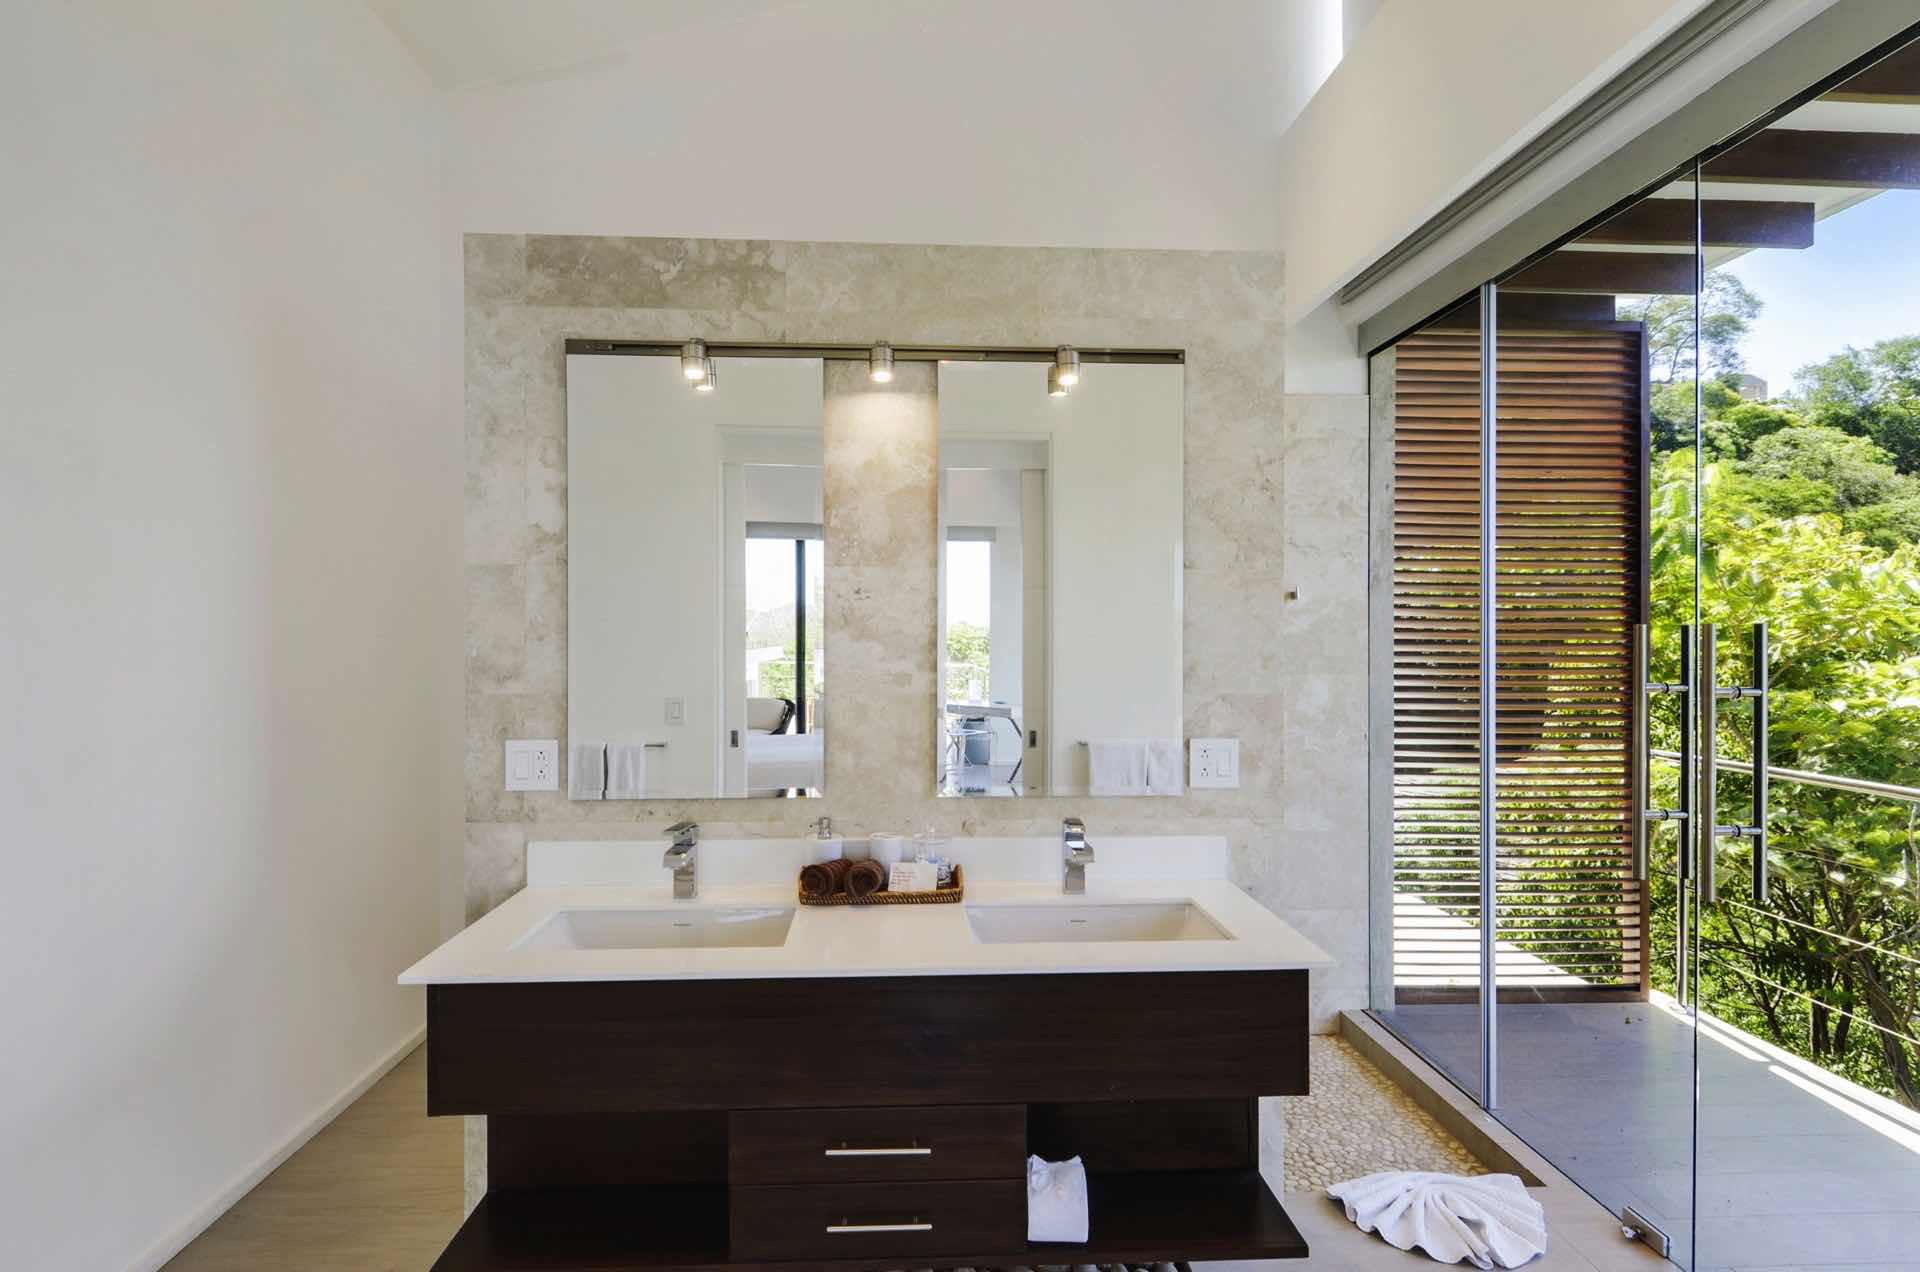 Double sinks make this BR great for couples!